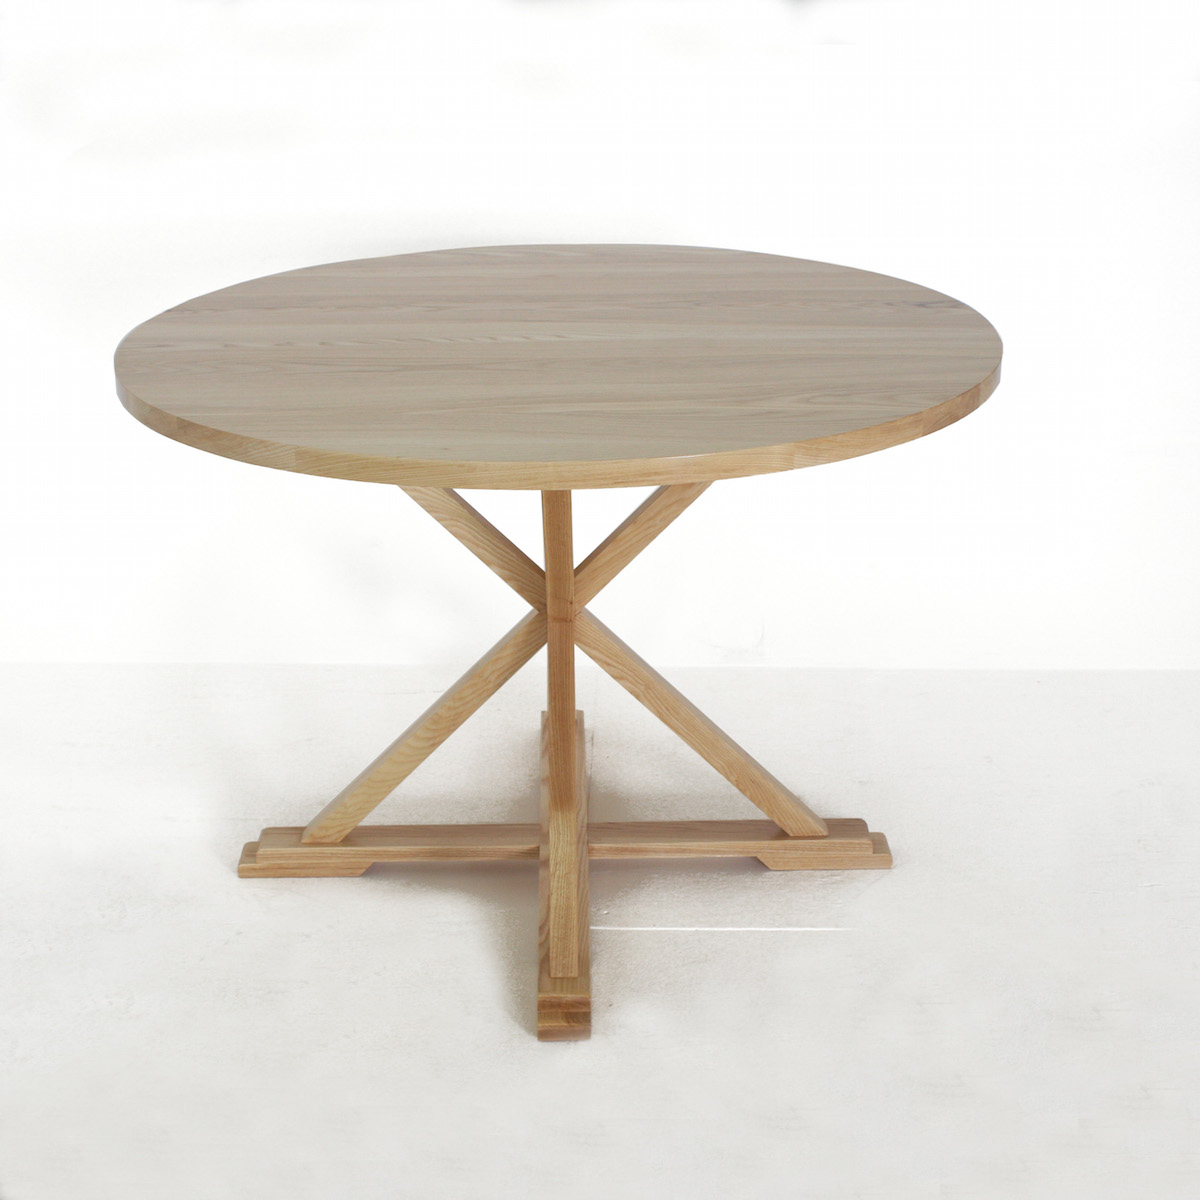 The goodwood co round x leg dining room table the for X leg dining room table